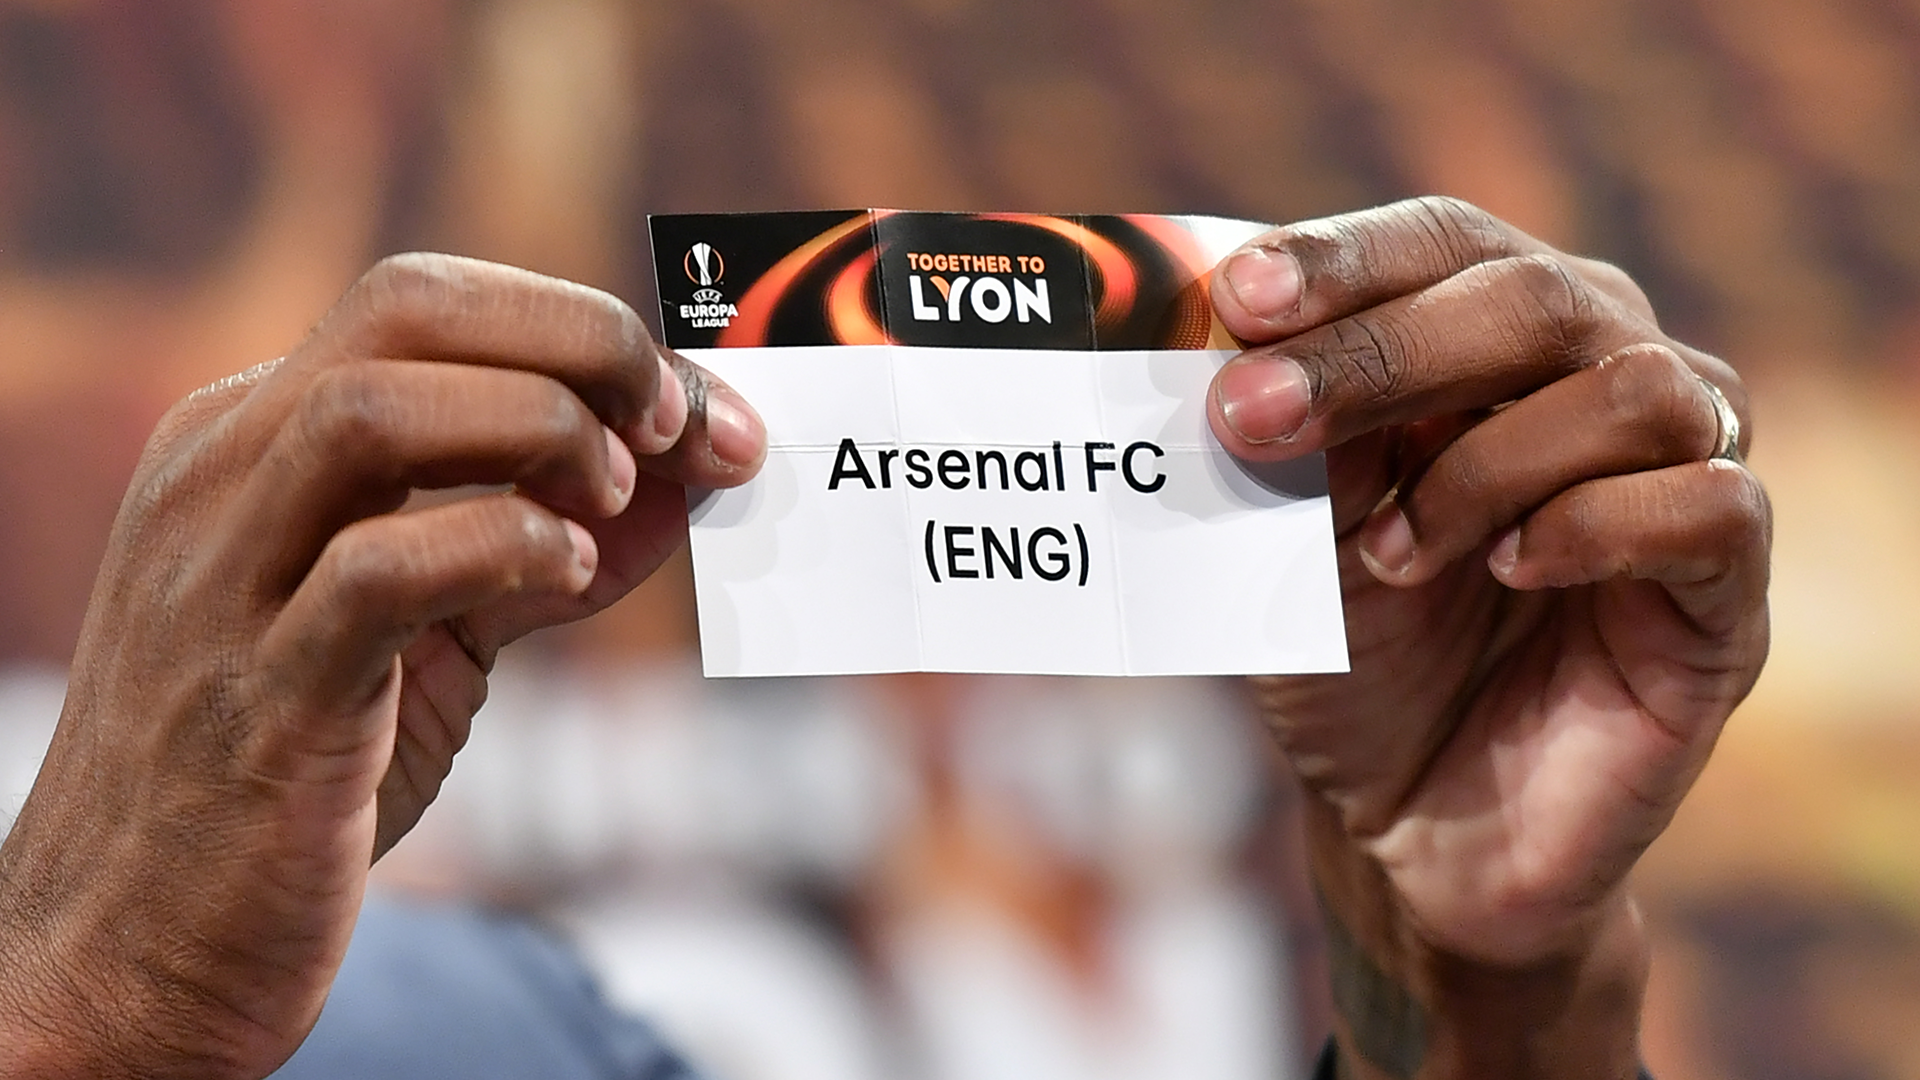 Arsenal Europa League 2018